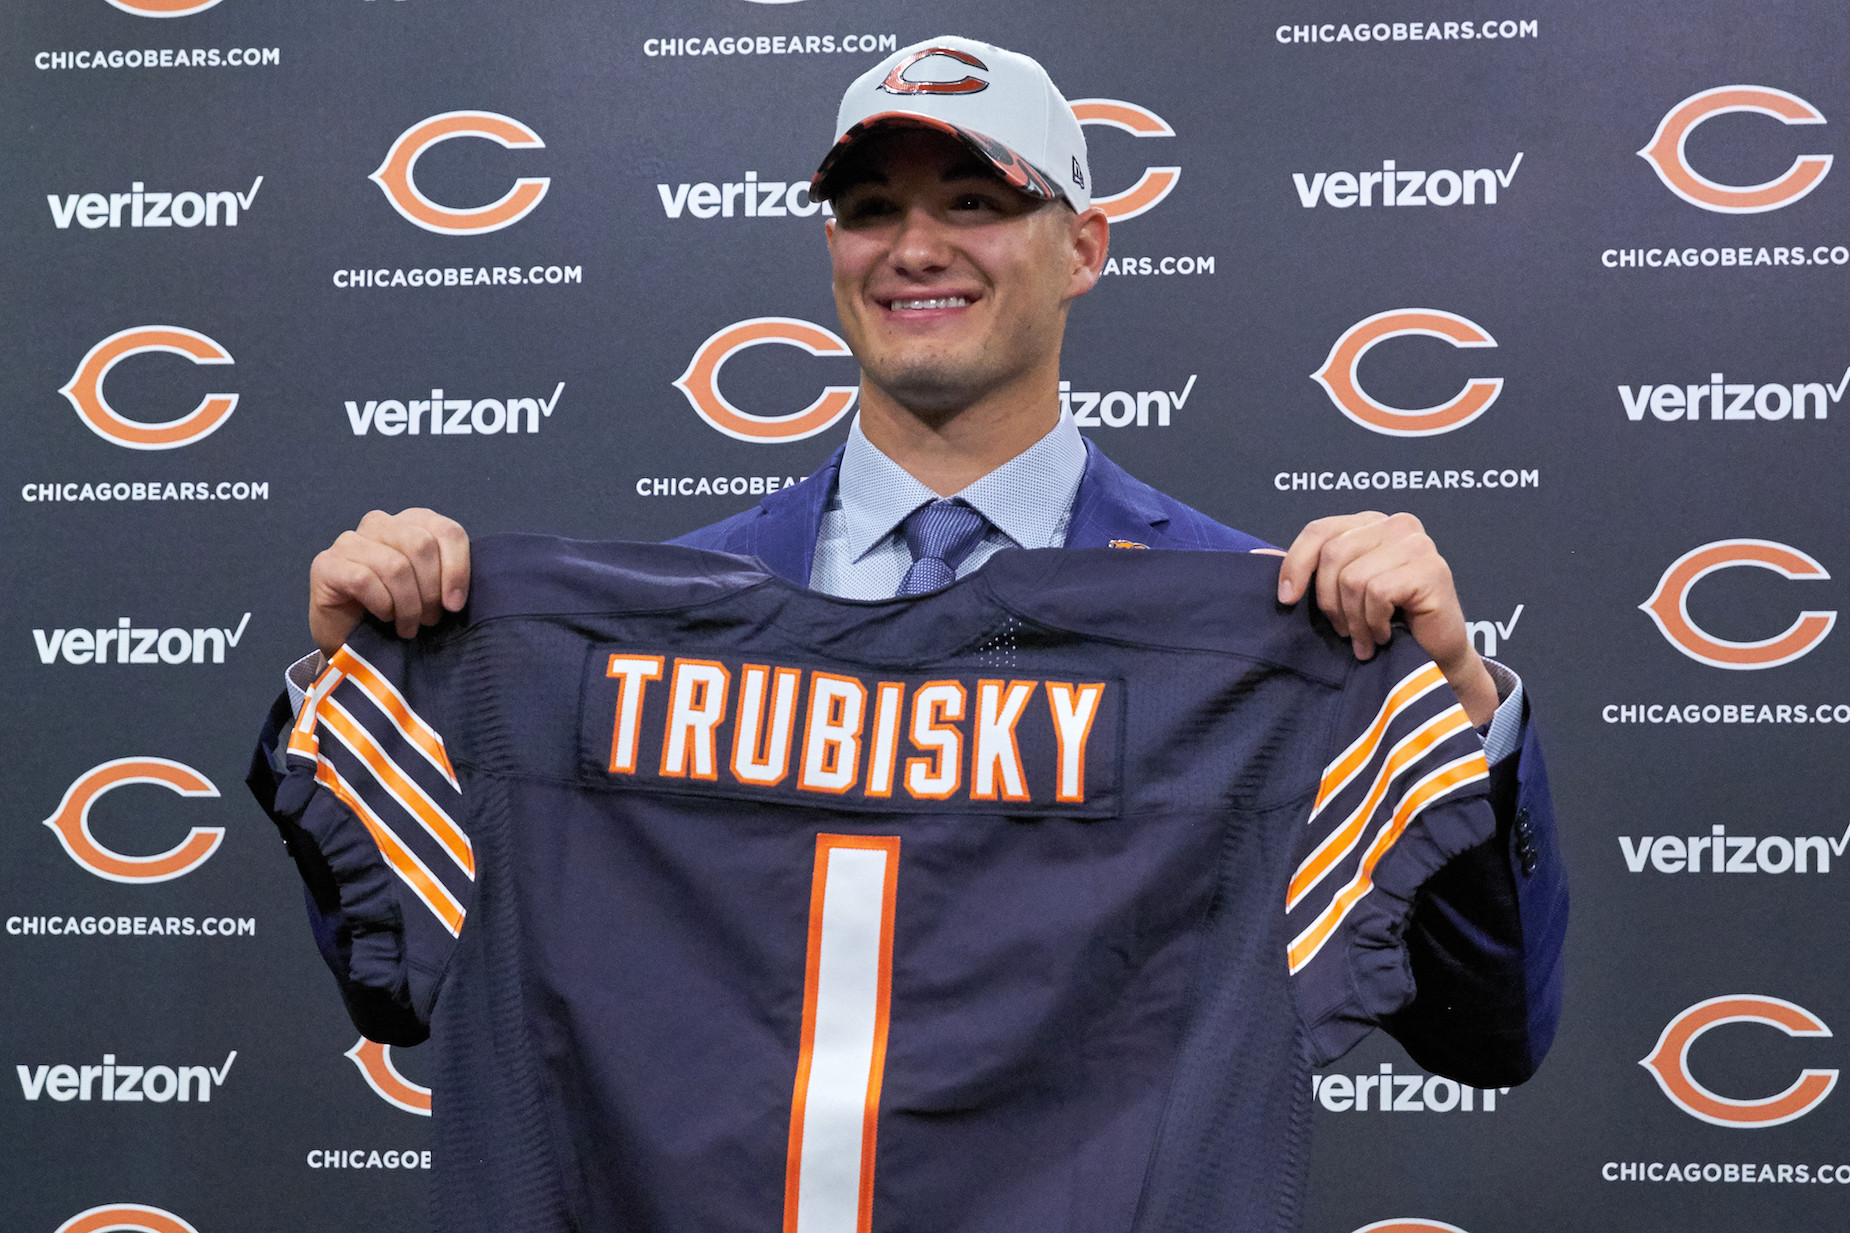 The Chicago Bears decision to draft Mitchell Trubisky just got even more painful for Bears fans.